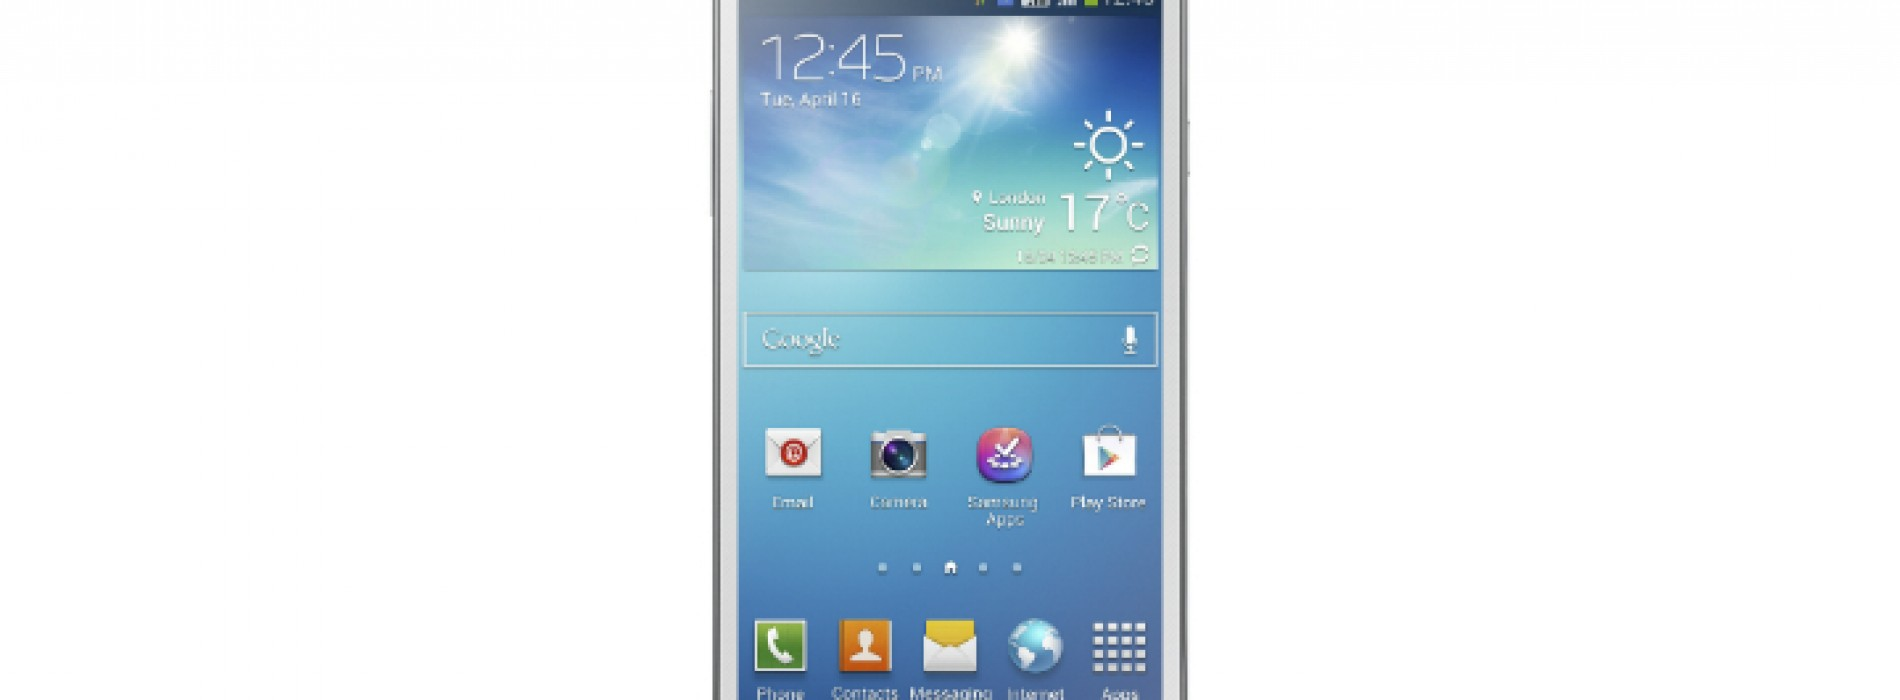 Samsung announces Galaxy Mega 5.8 and Galaxy Mega 6.3